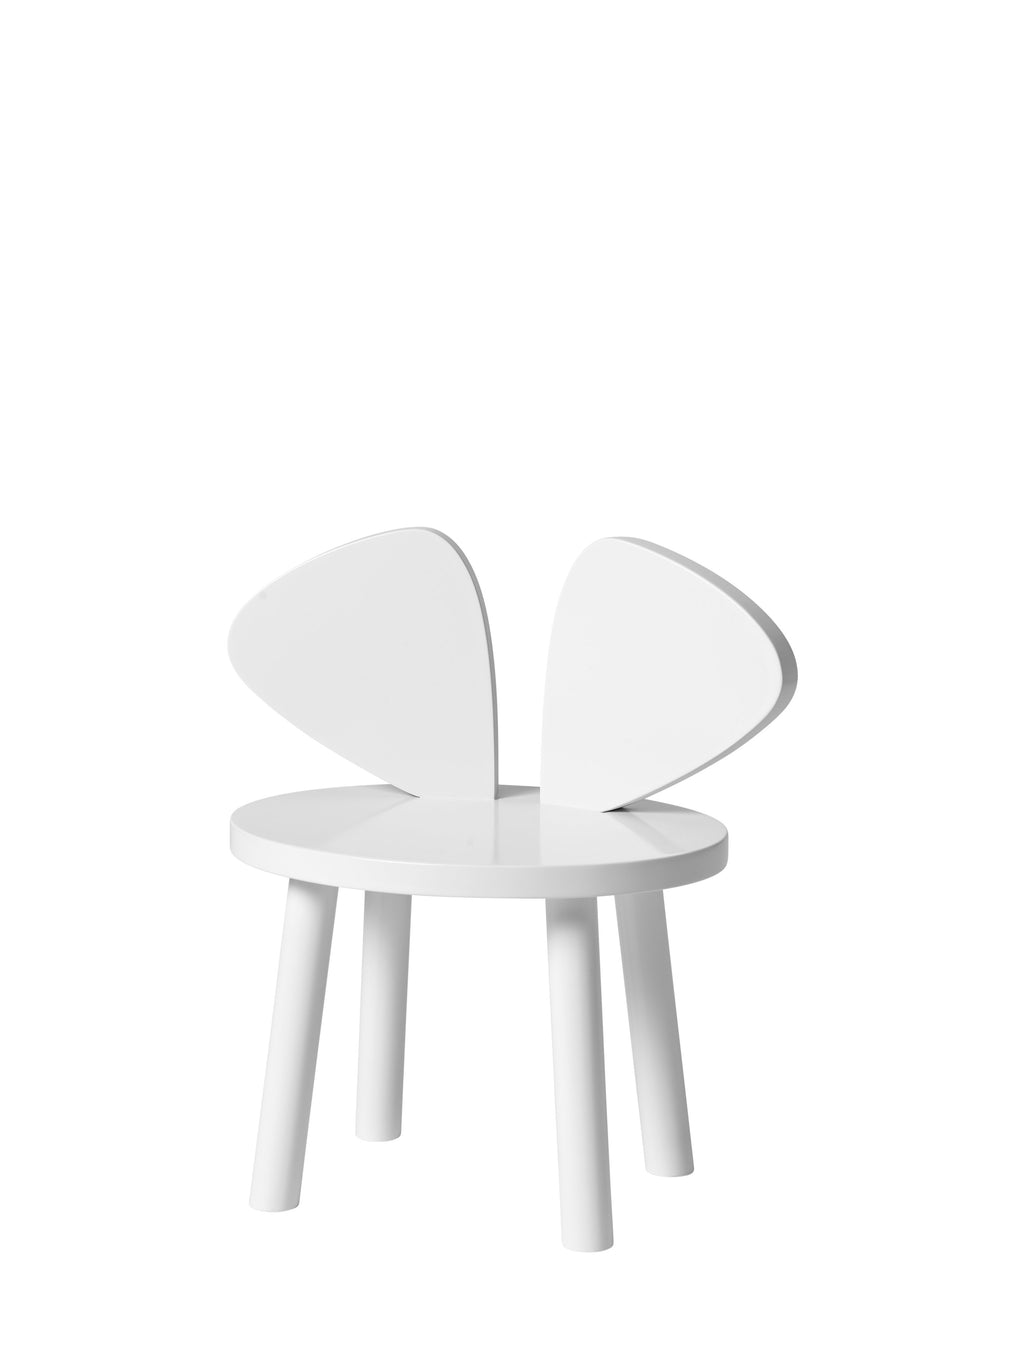 furniture - Nofred Mouse Chair (White) - mondocherry